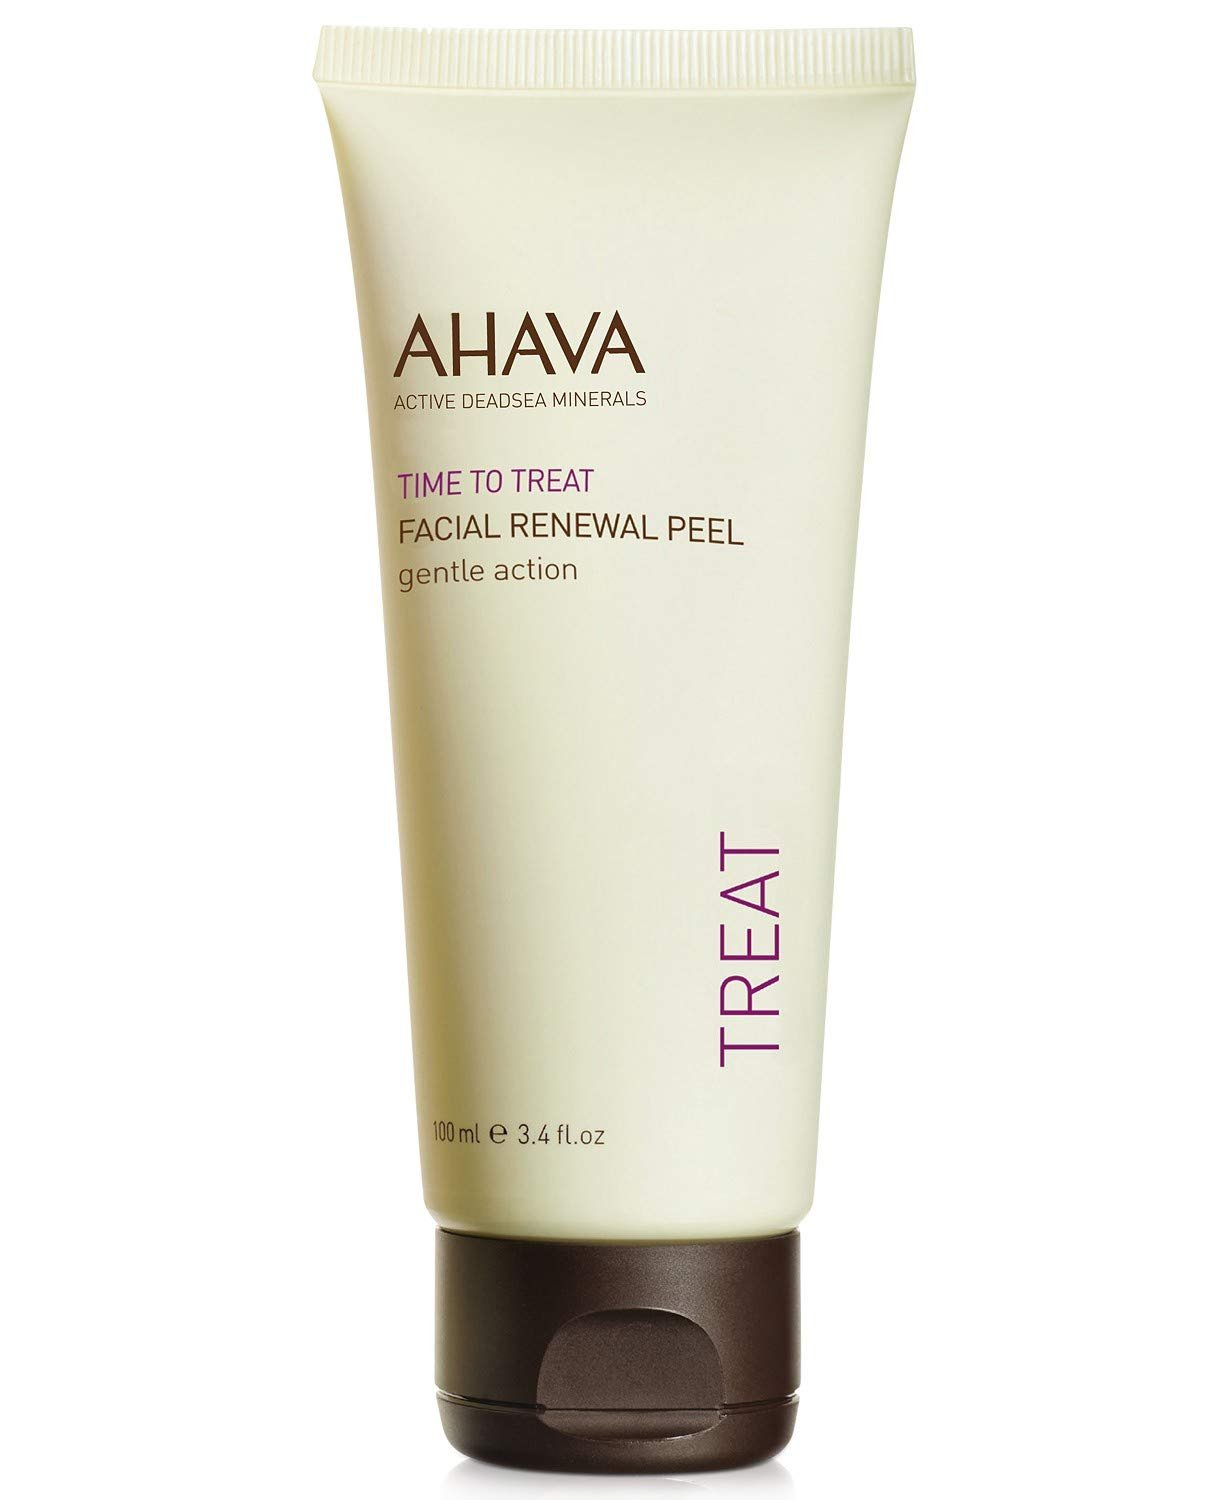 AHAVA - Facial Renewal Peel 100 ml